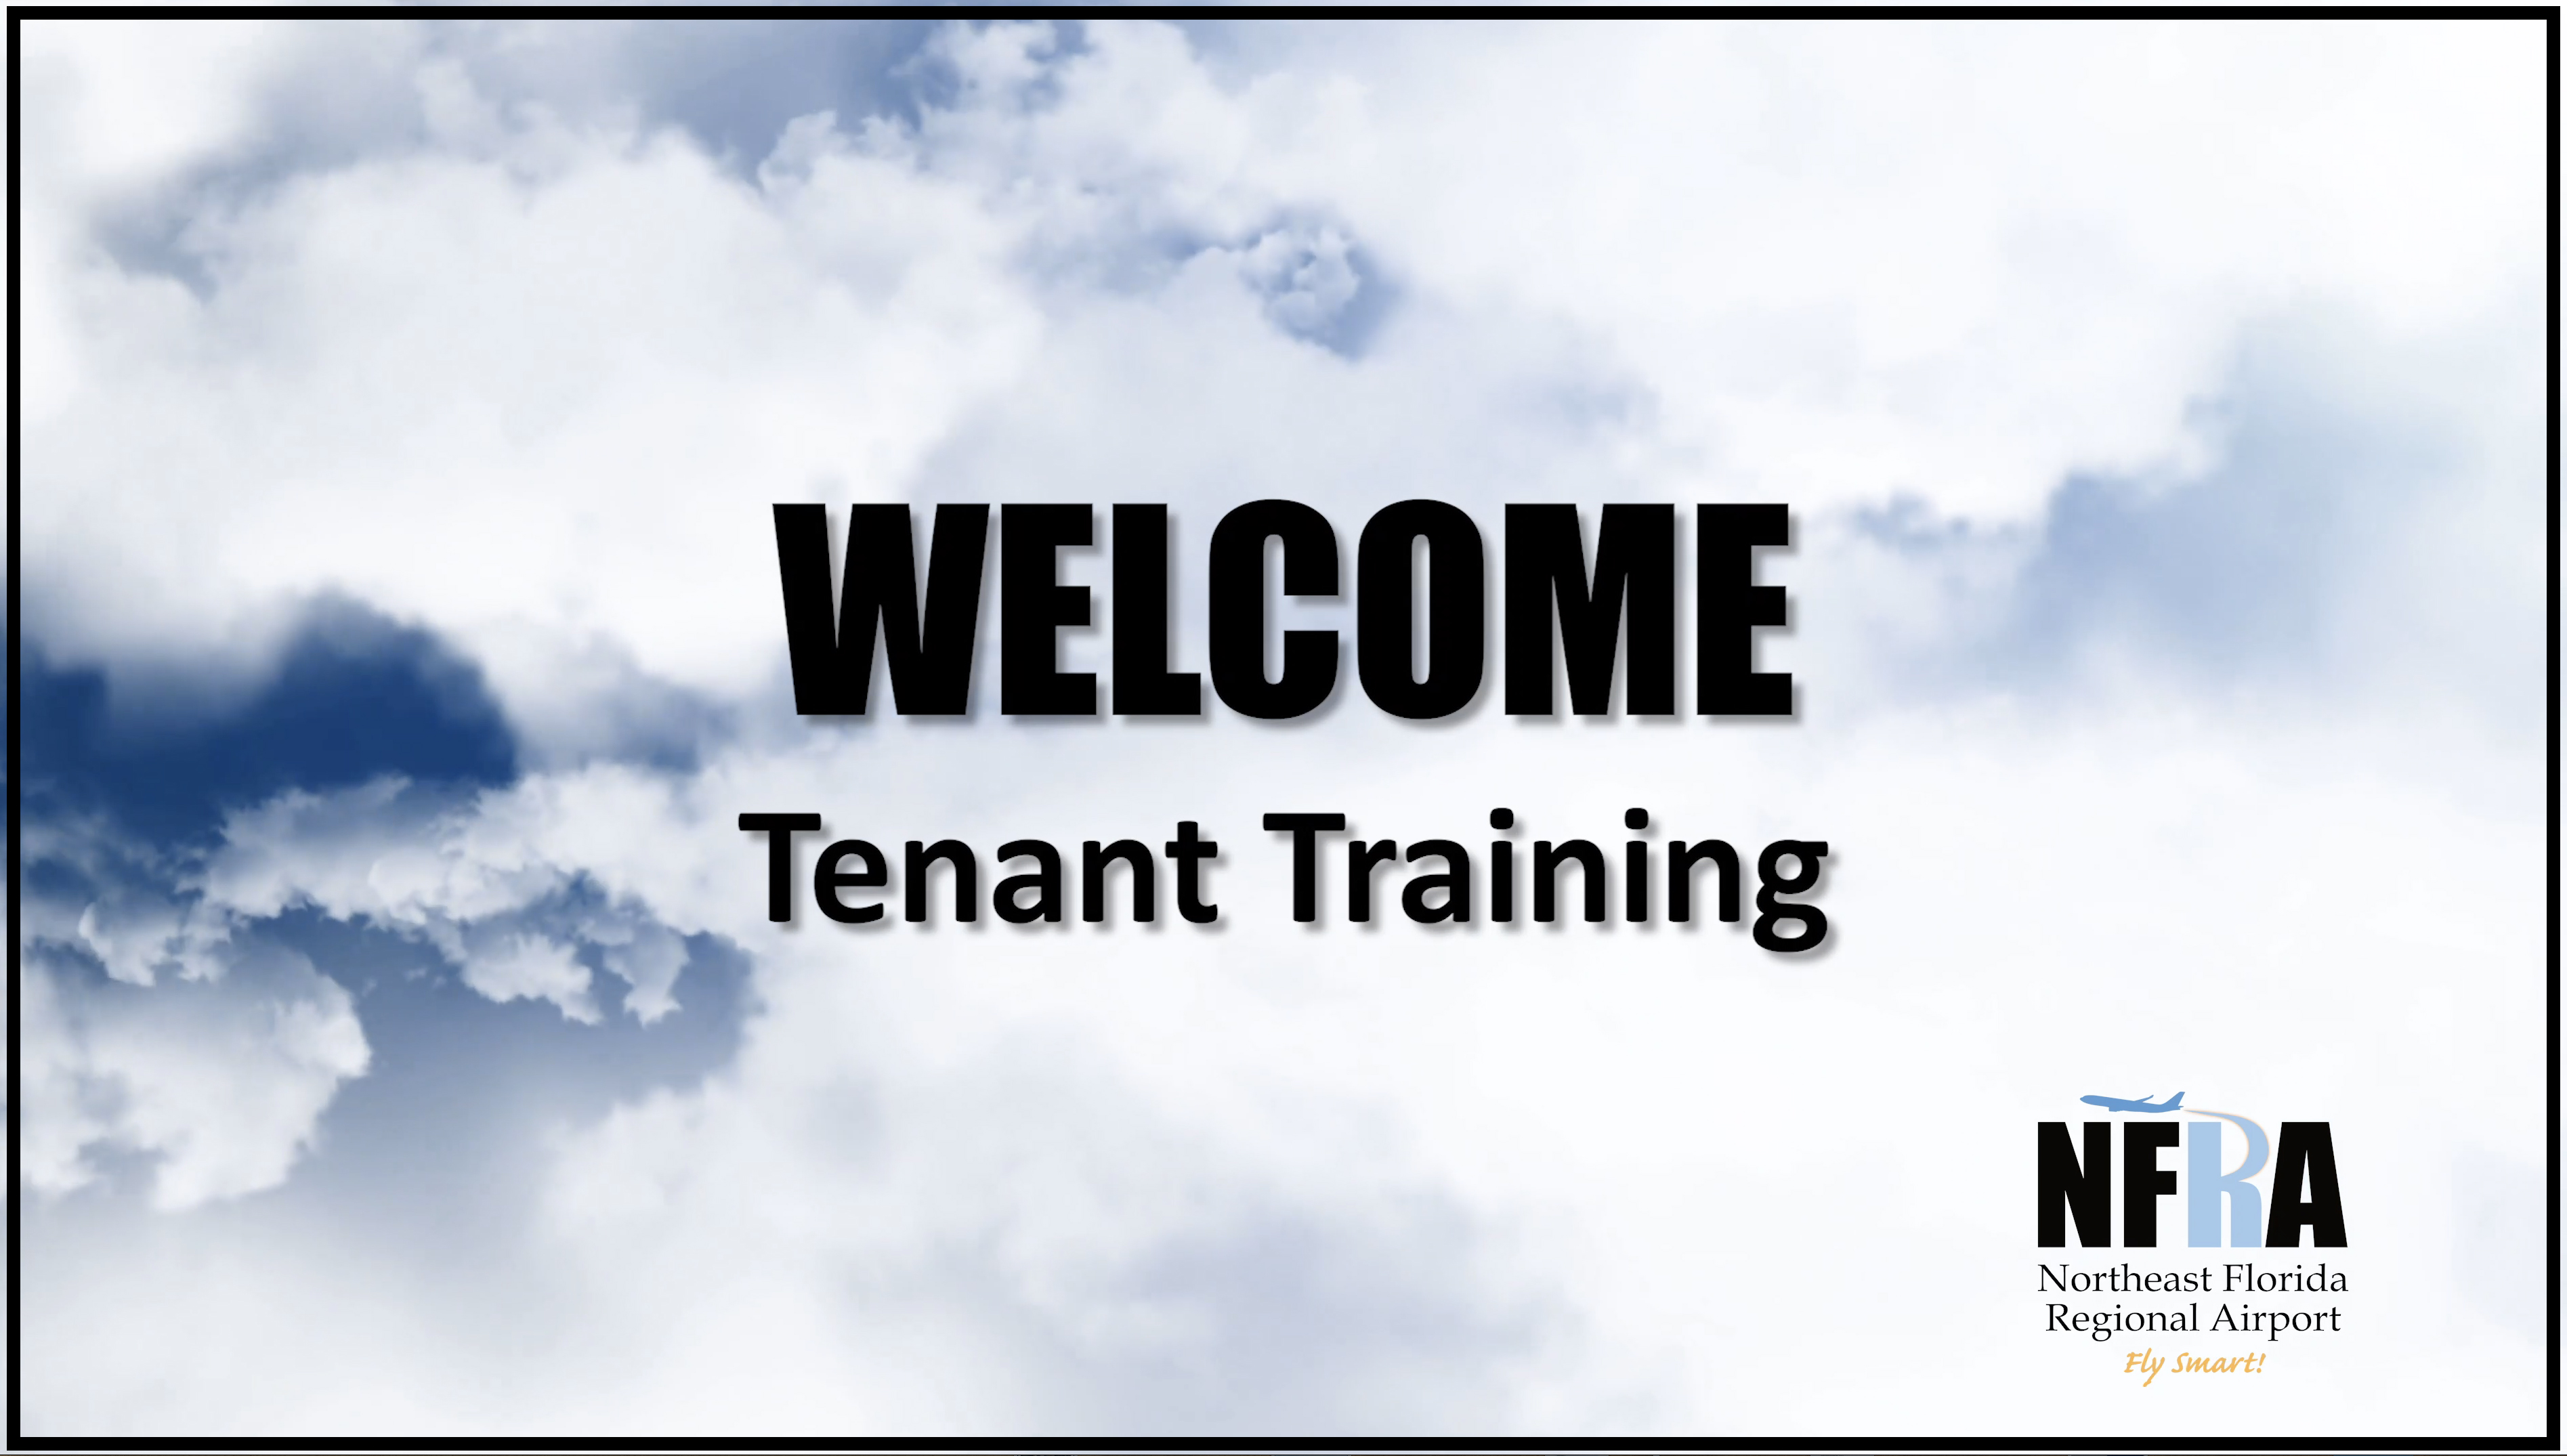 Tenant Training Video Image